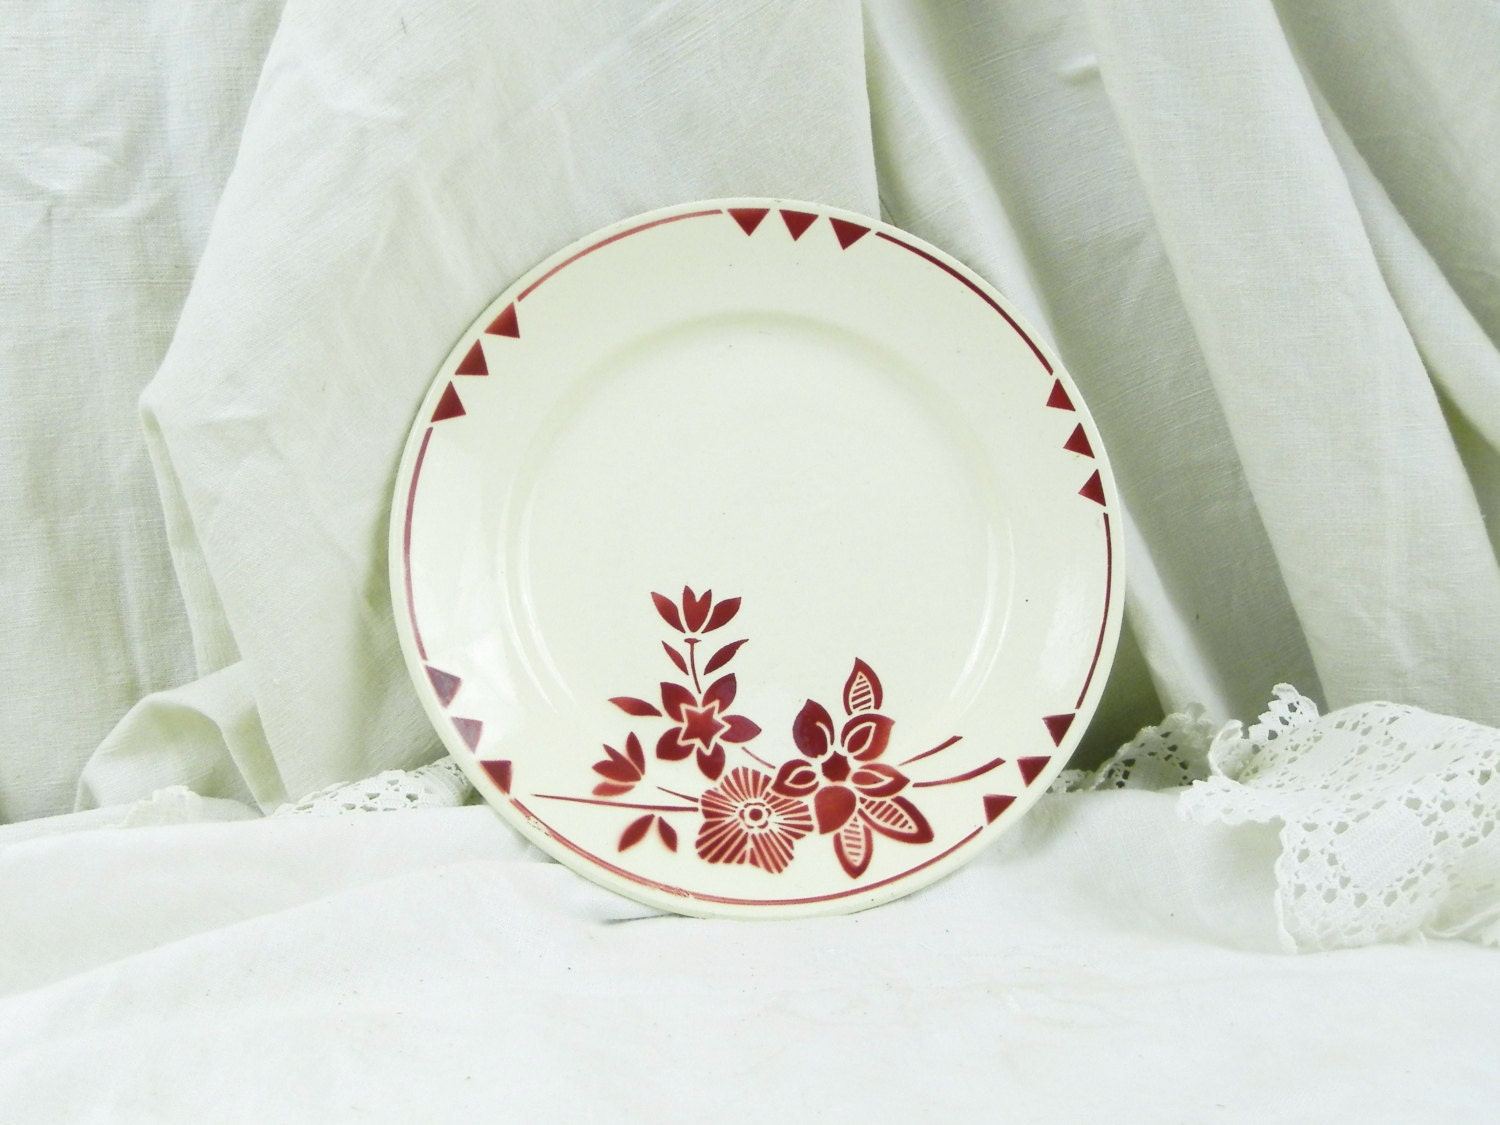 Vintage French Flower Motif Ceramic Plate By